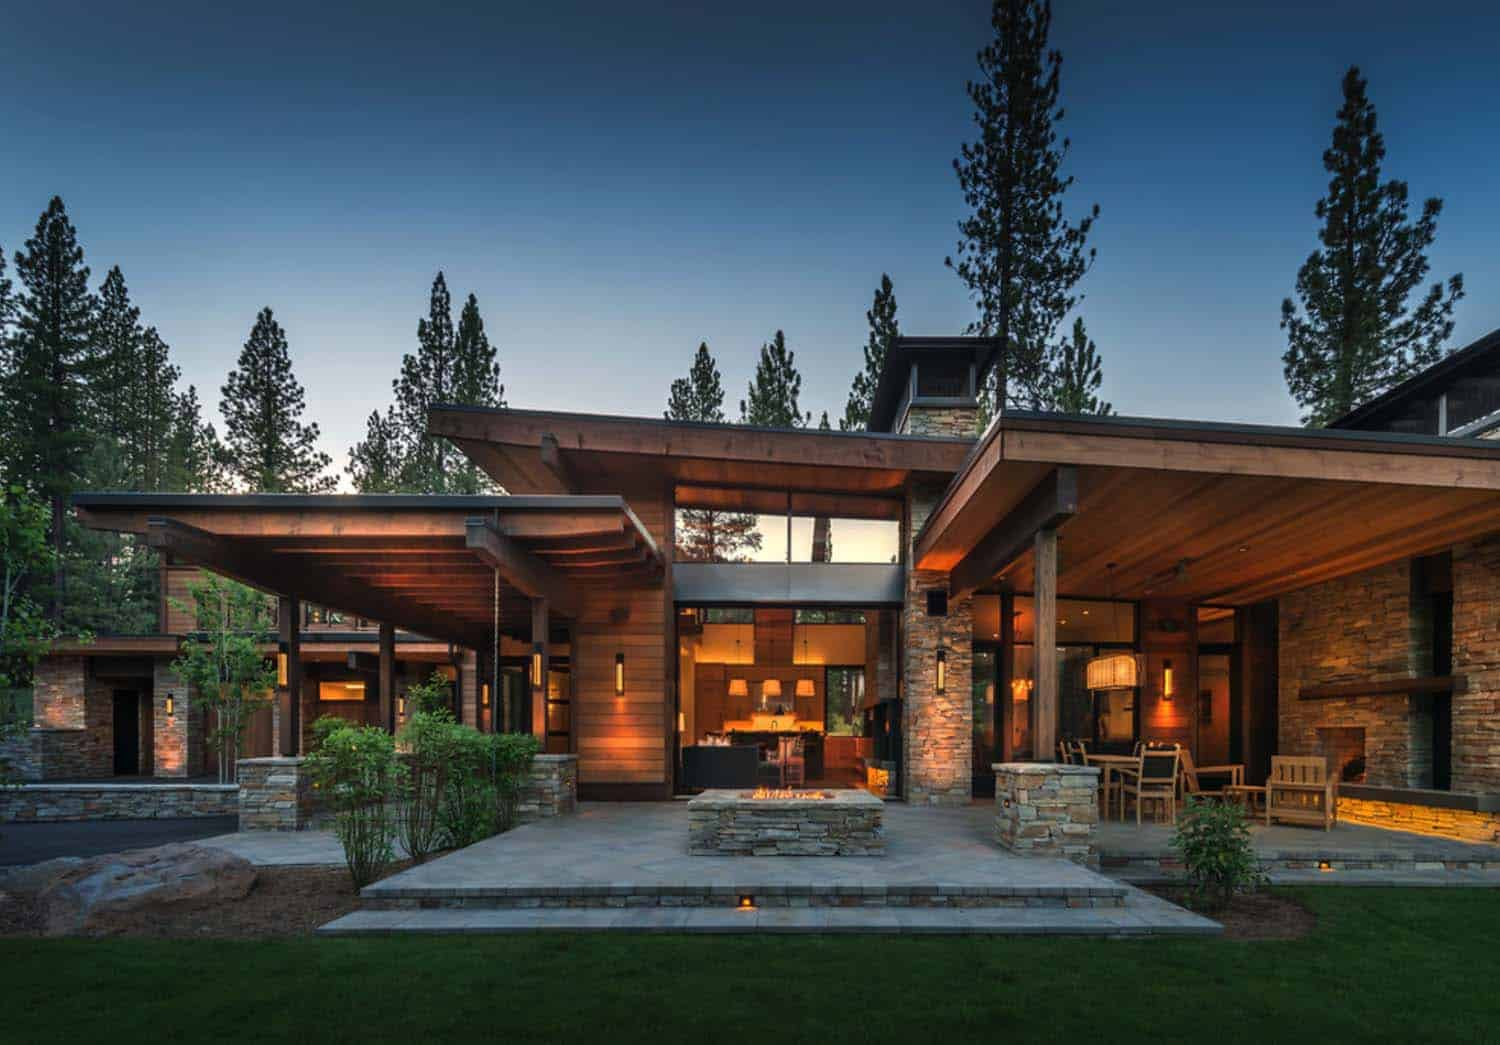 Mountain modern home in martis camp with indoor outdoor living Small modern mountain house plans